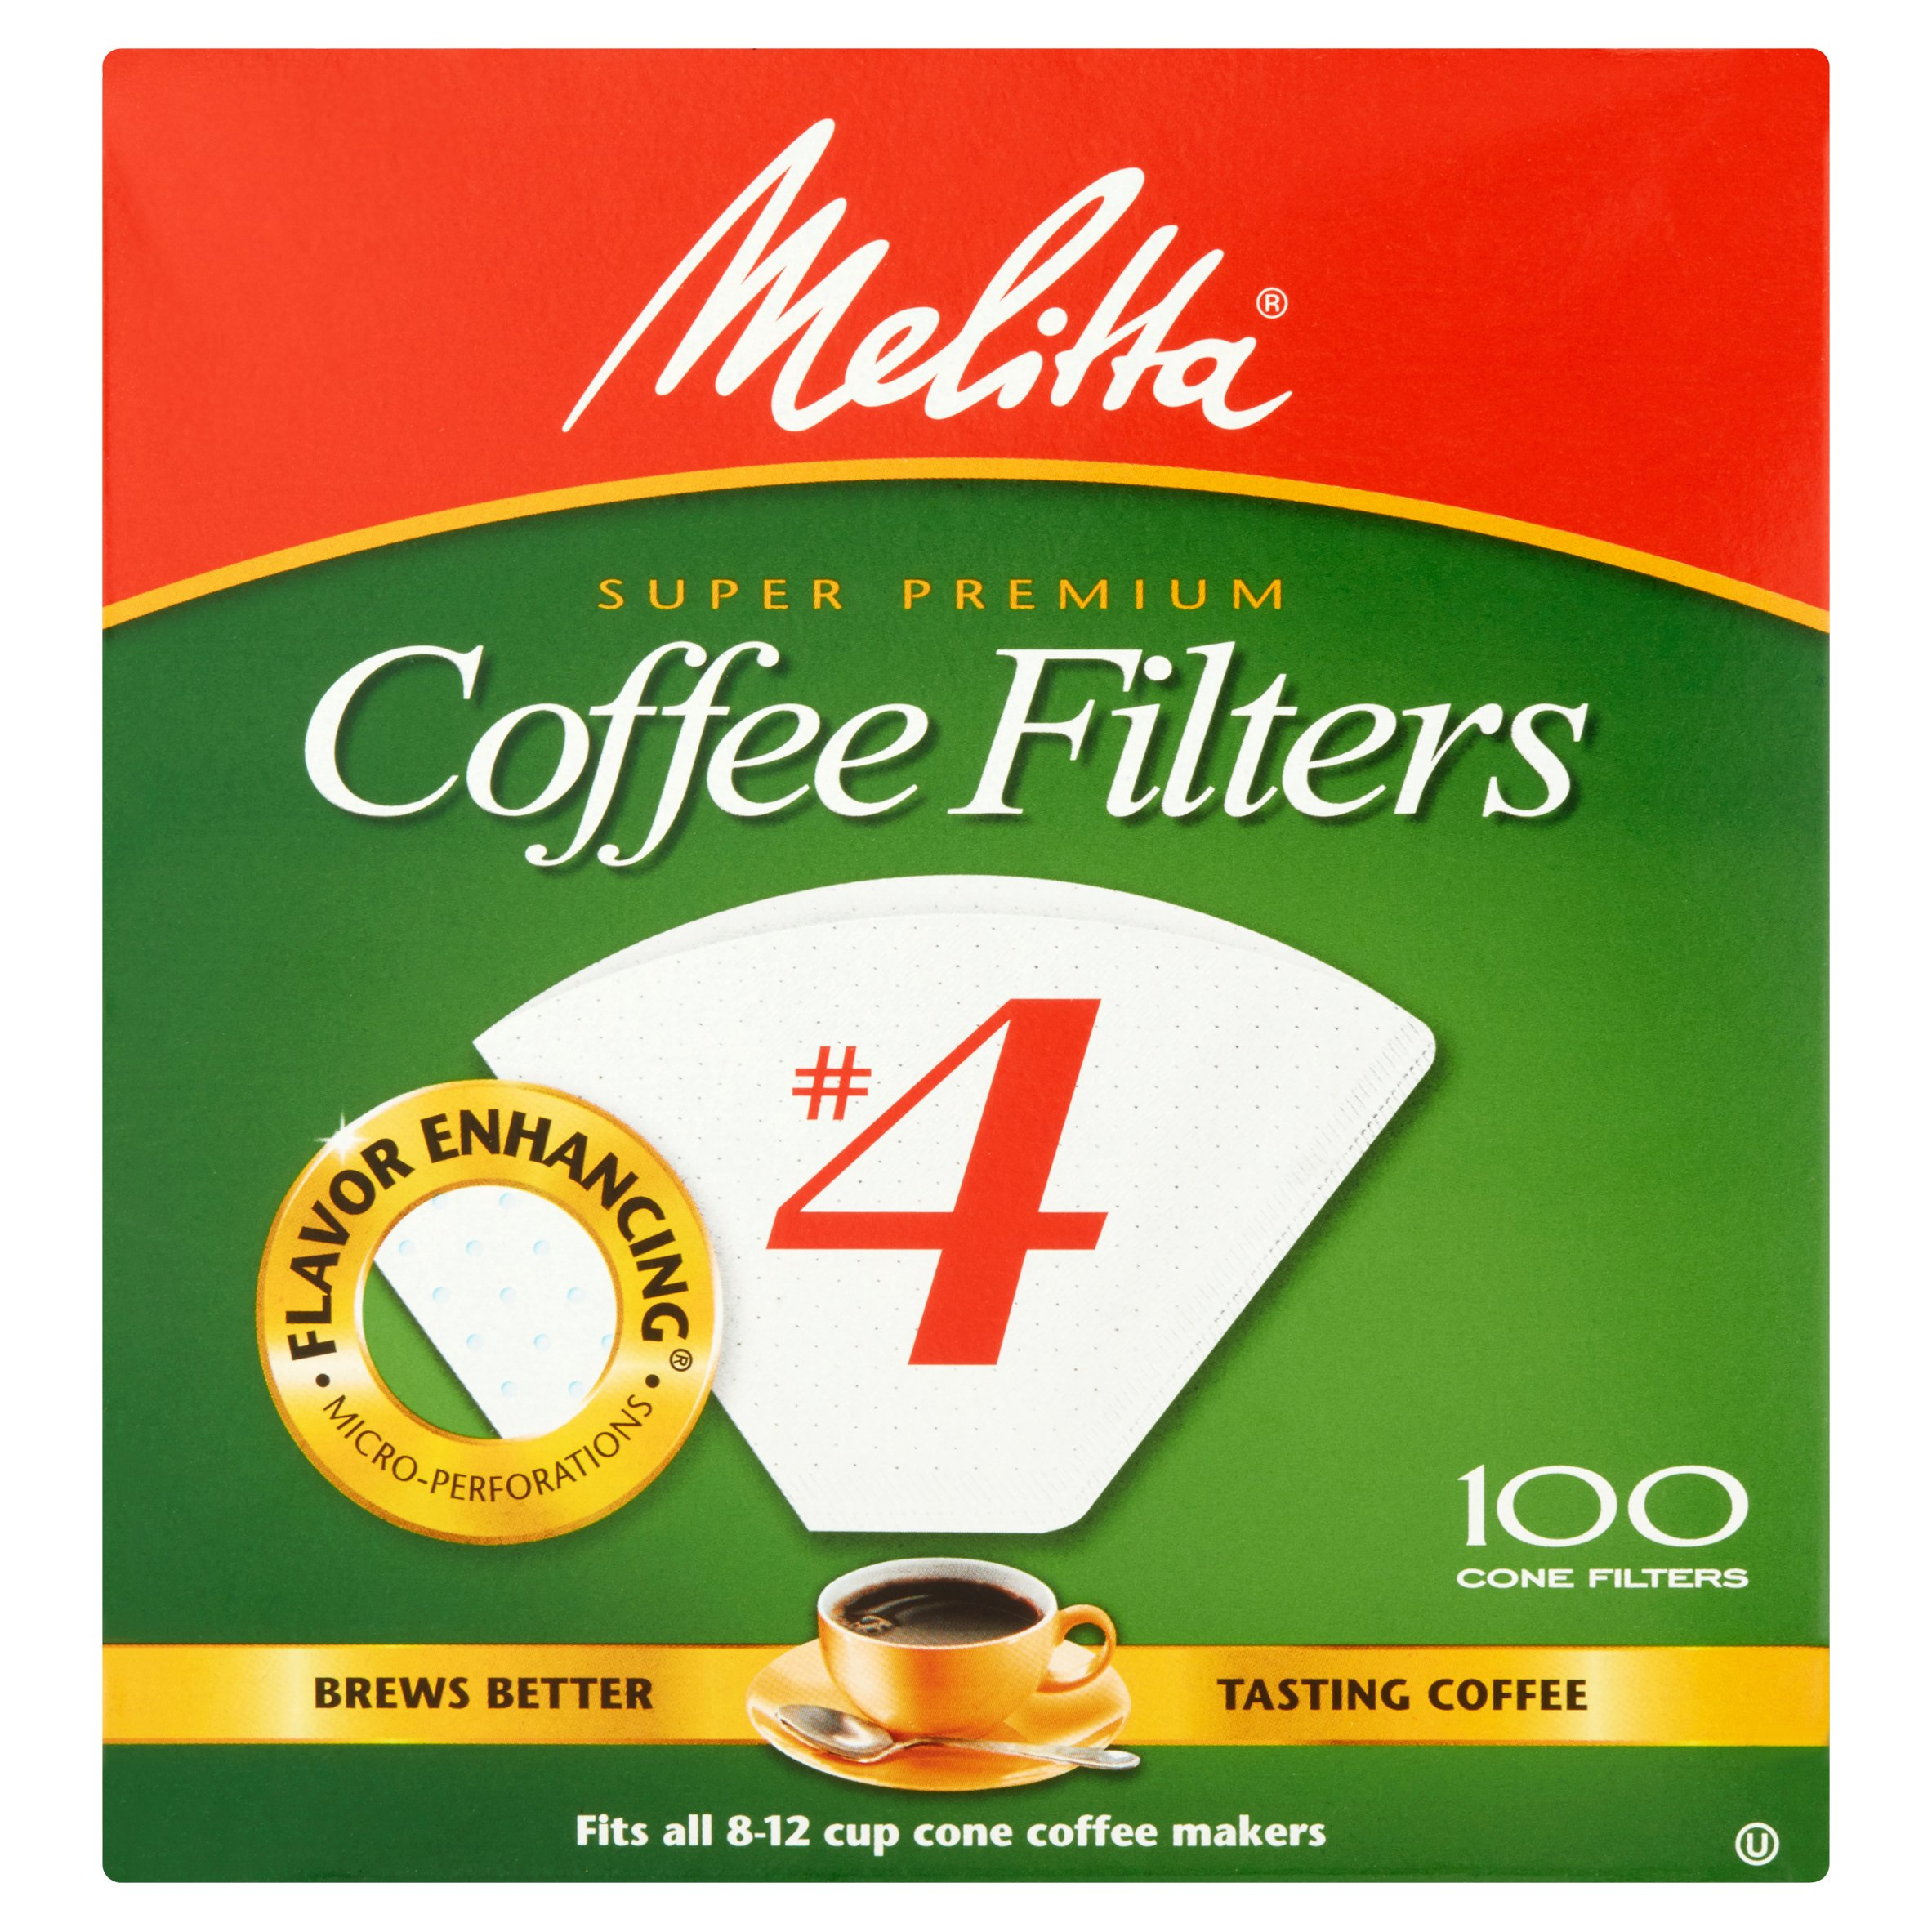 Melitta Super Premium #4 Coffee Filters, 100 count by Melitta USA, Inc.